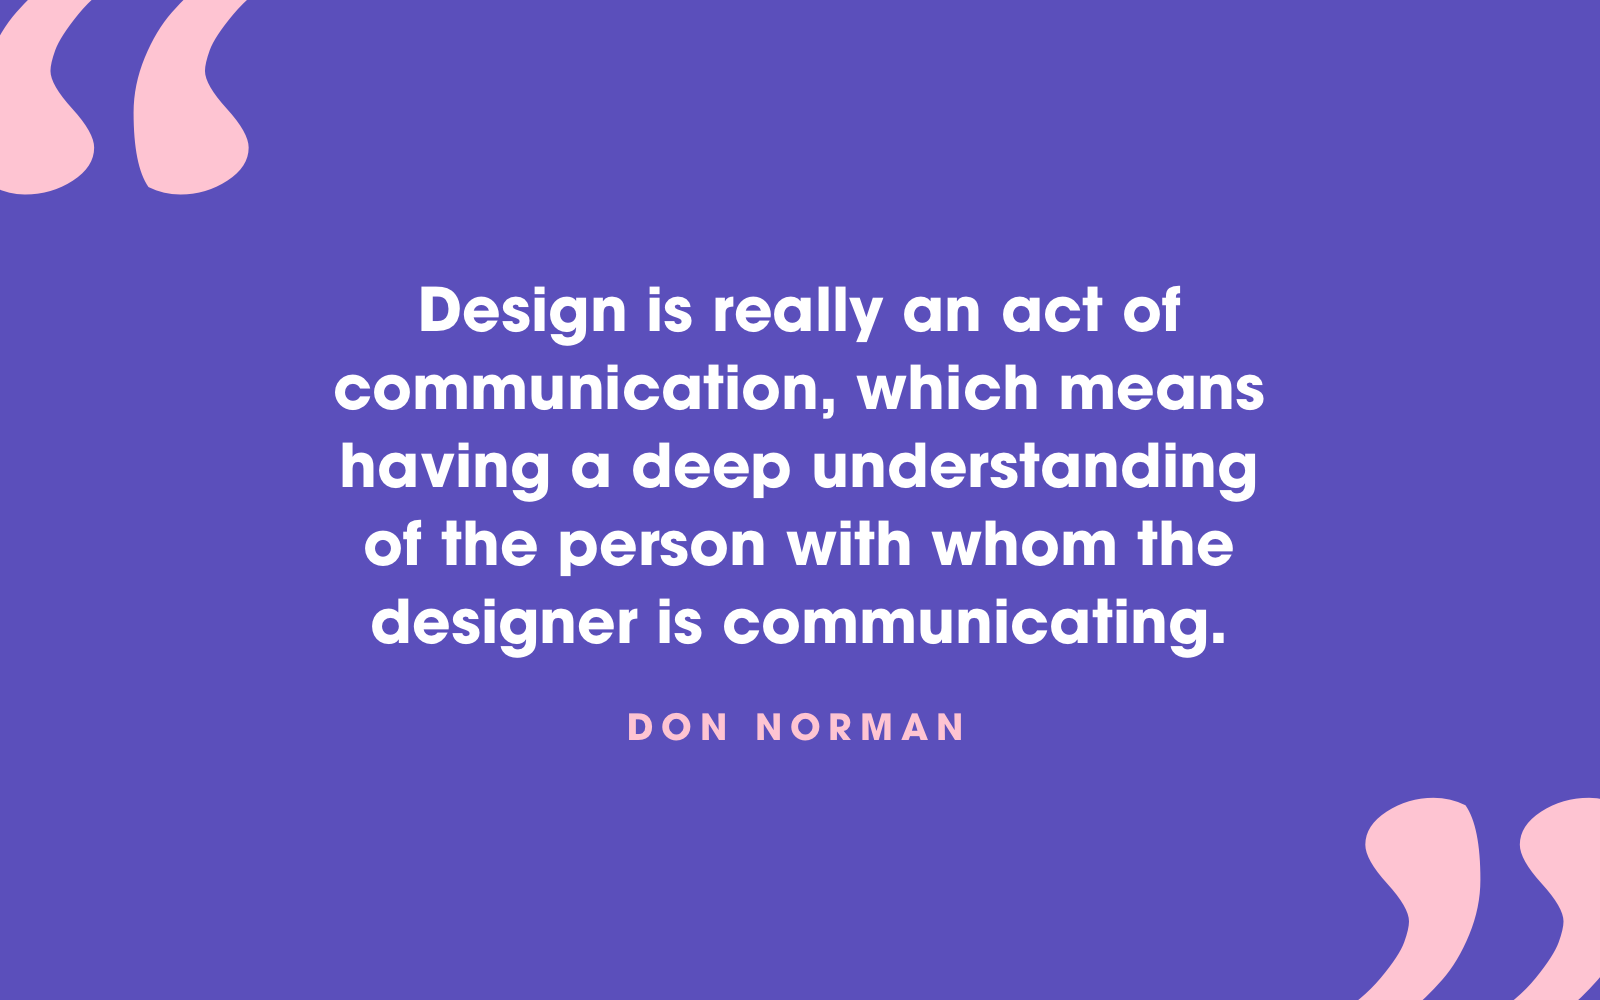 don_norman_quote.png